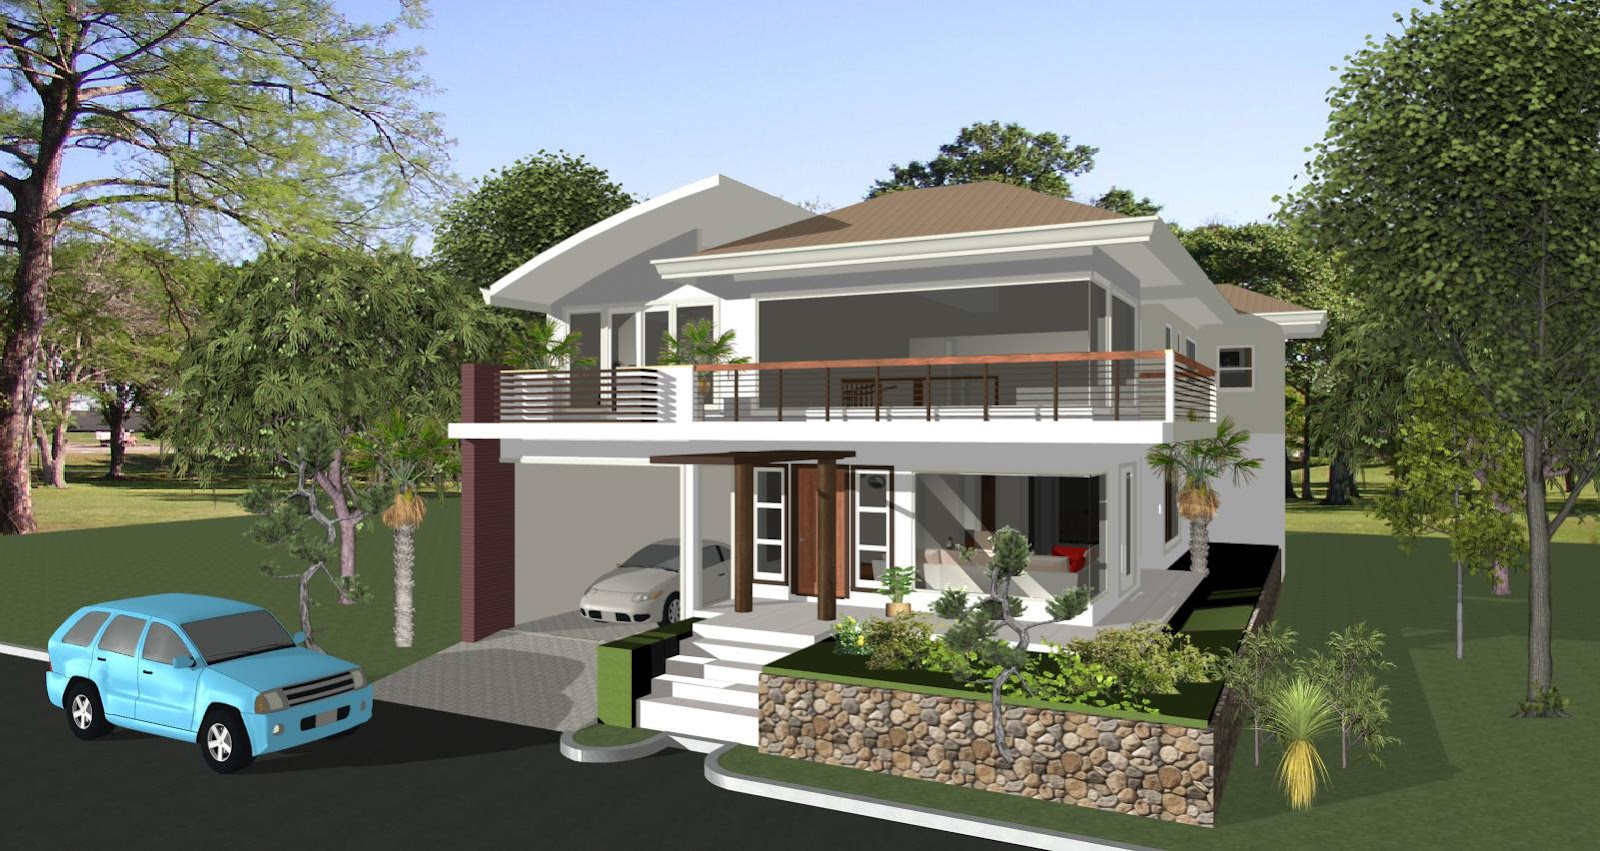 House designs philippines architect bill house plans Create dream home